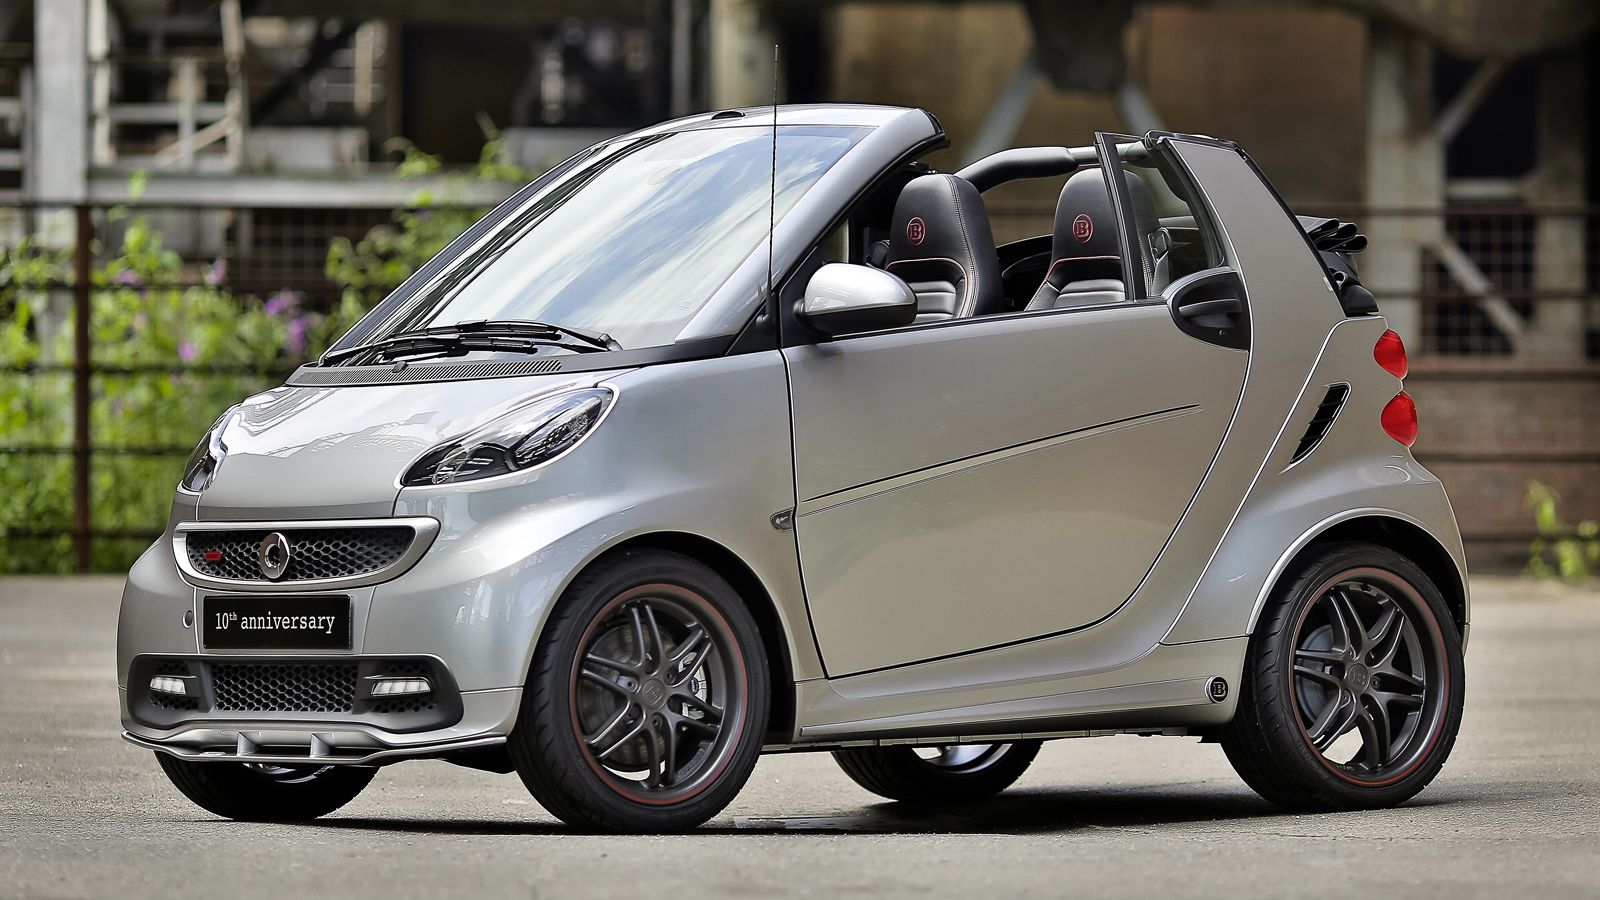 smart brabus smart fortwo coupe. Black Bedroom Furniture Sets. Home Design Ideas